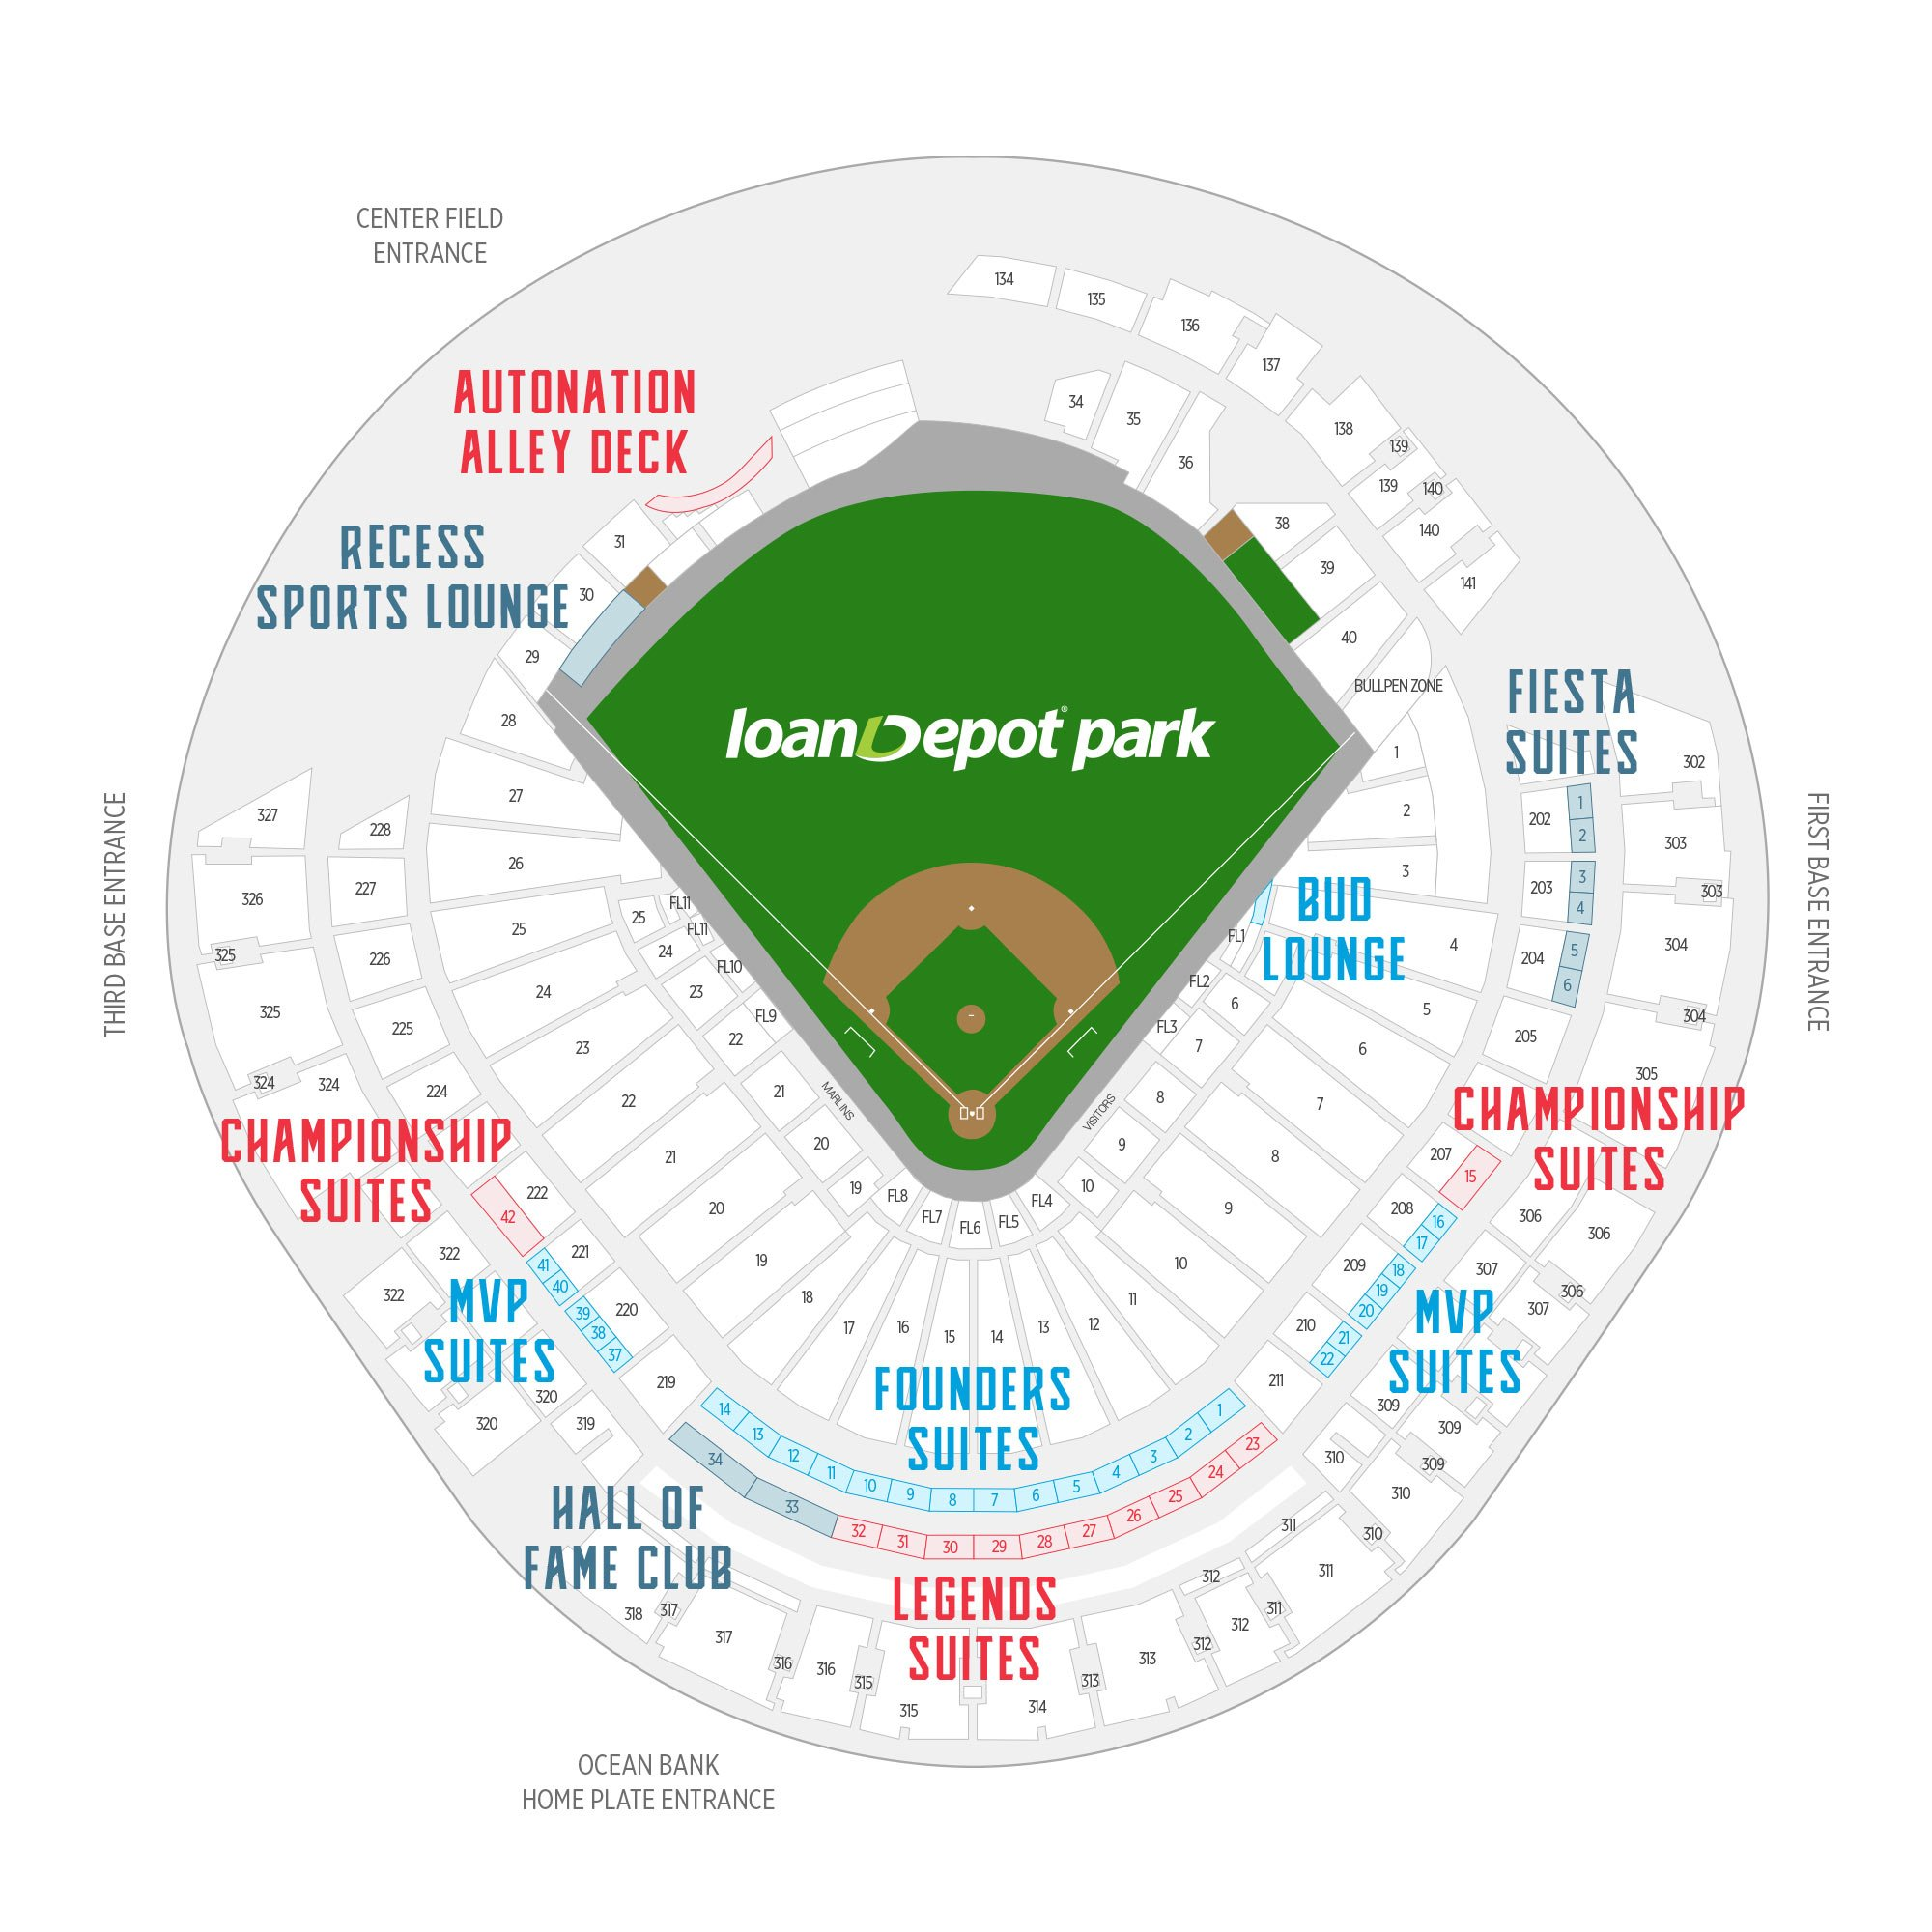 Marlins Park / Miami Marlins Suite Map and Seating Chart